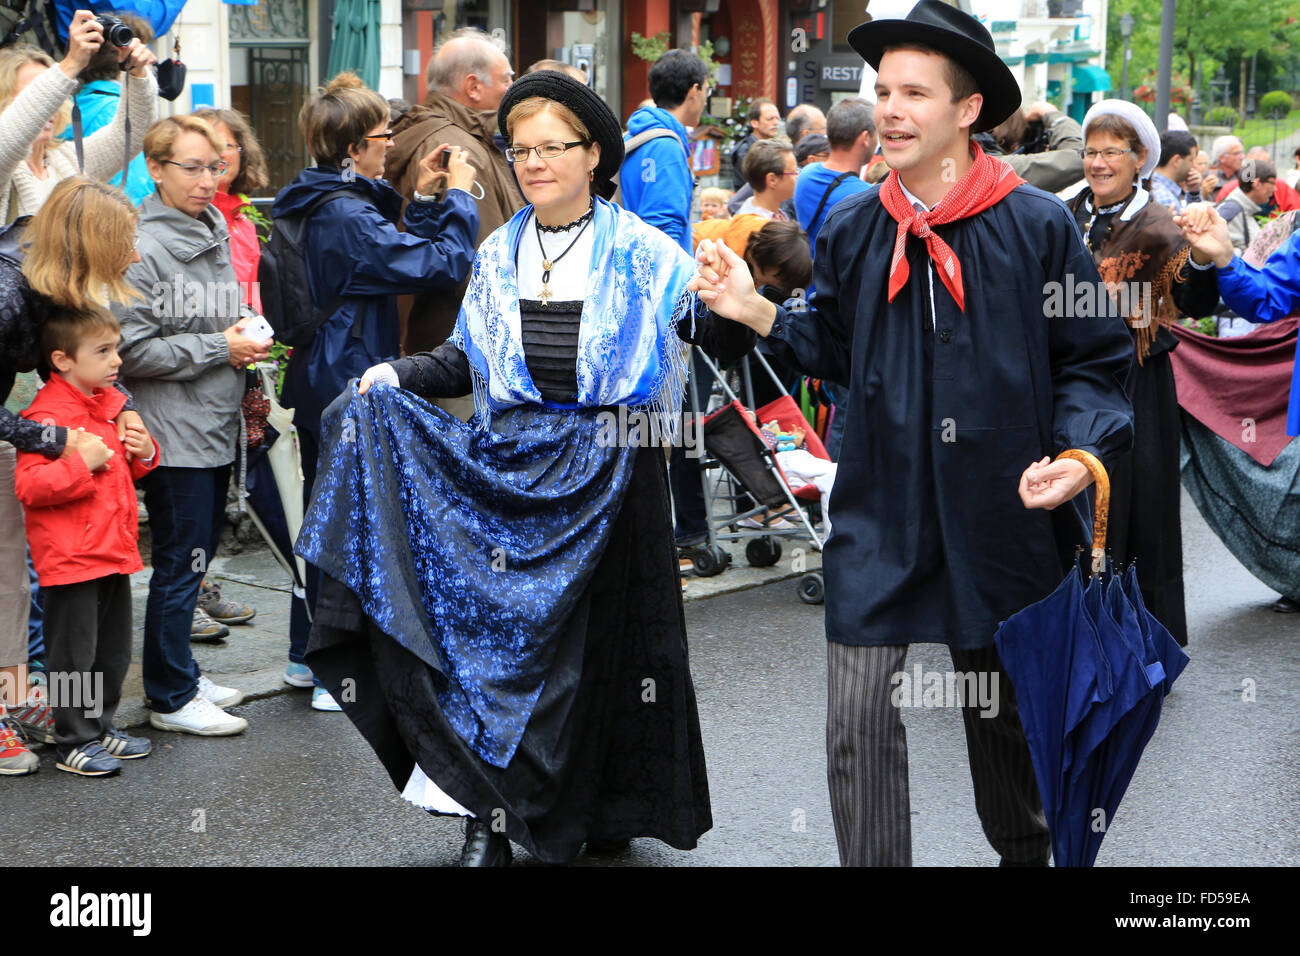 Savoyard folk dance with the cast of 'Chamochire'. - Stock Image